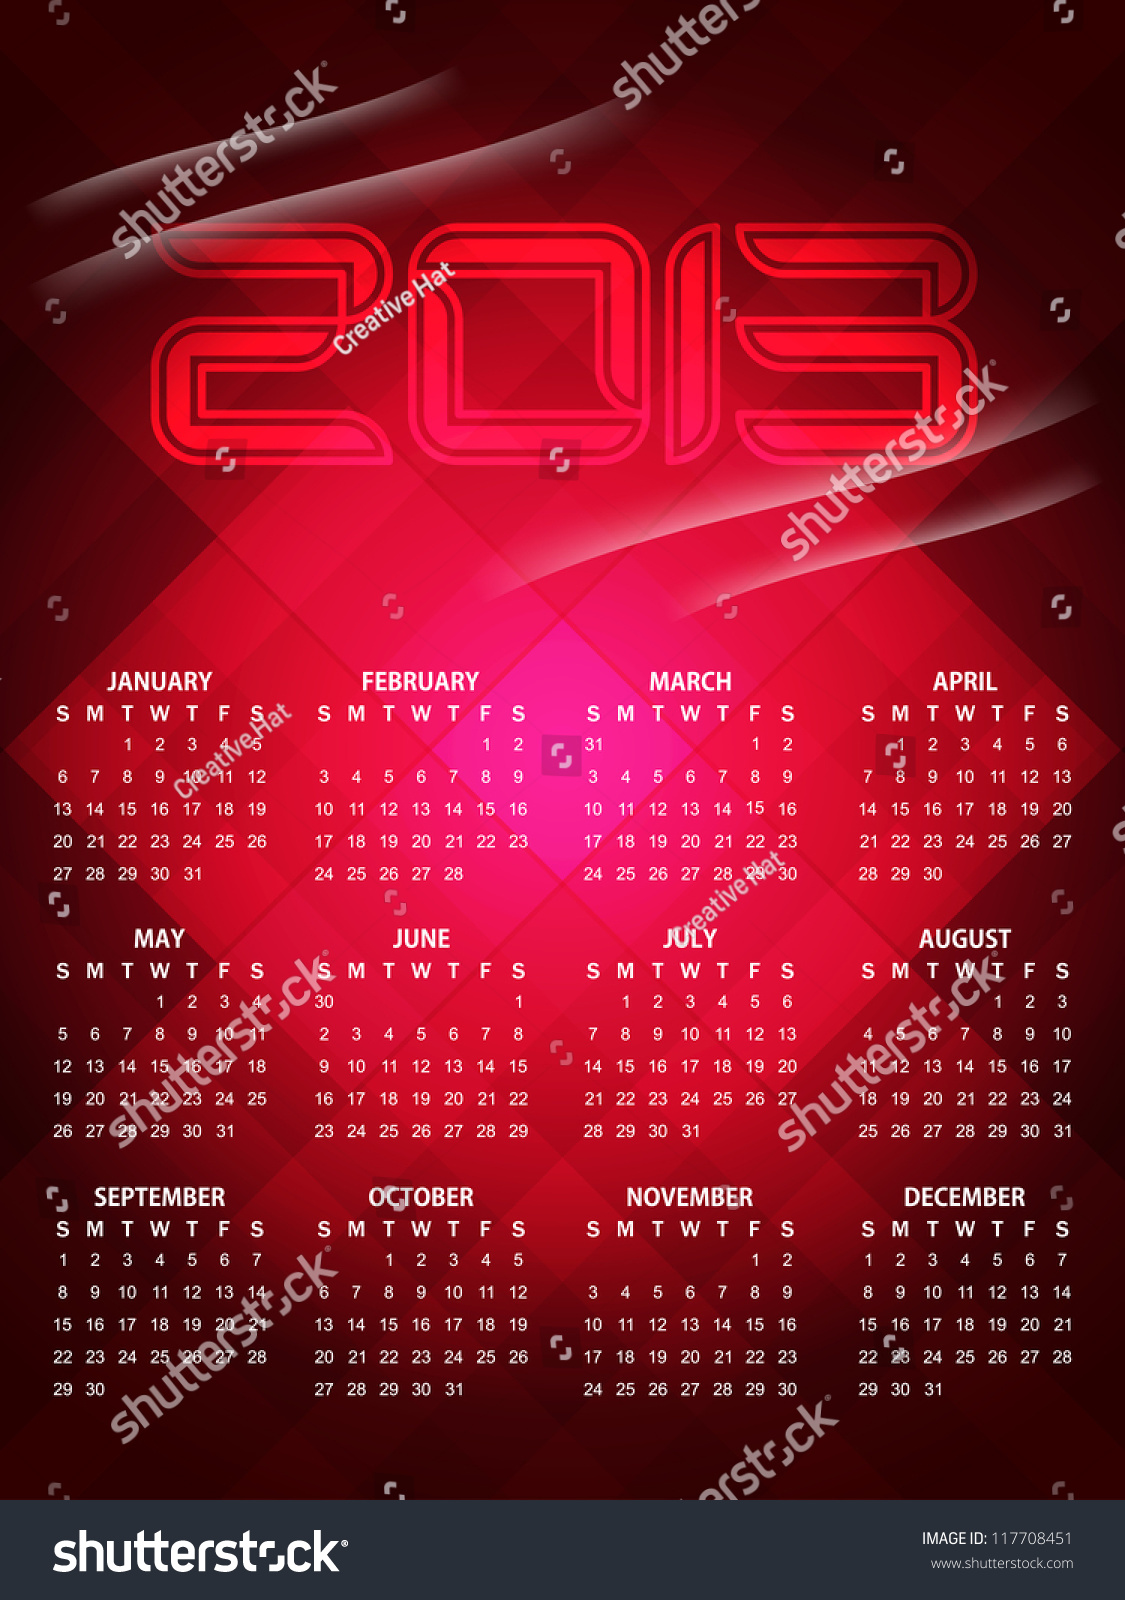 Beautiful Calendar Design : Beautiful calendar design for stock vector